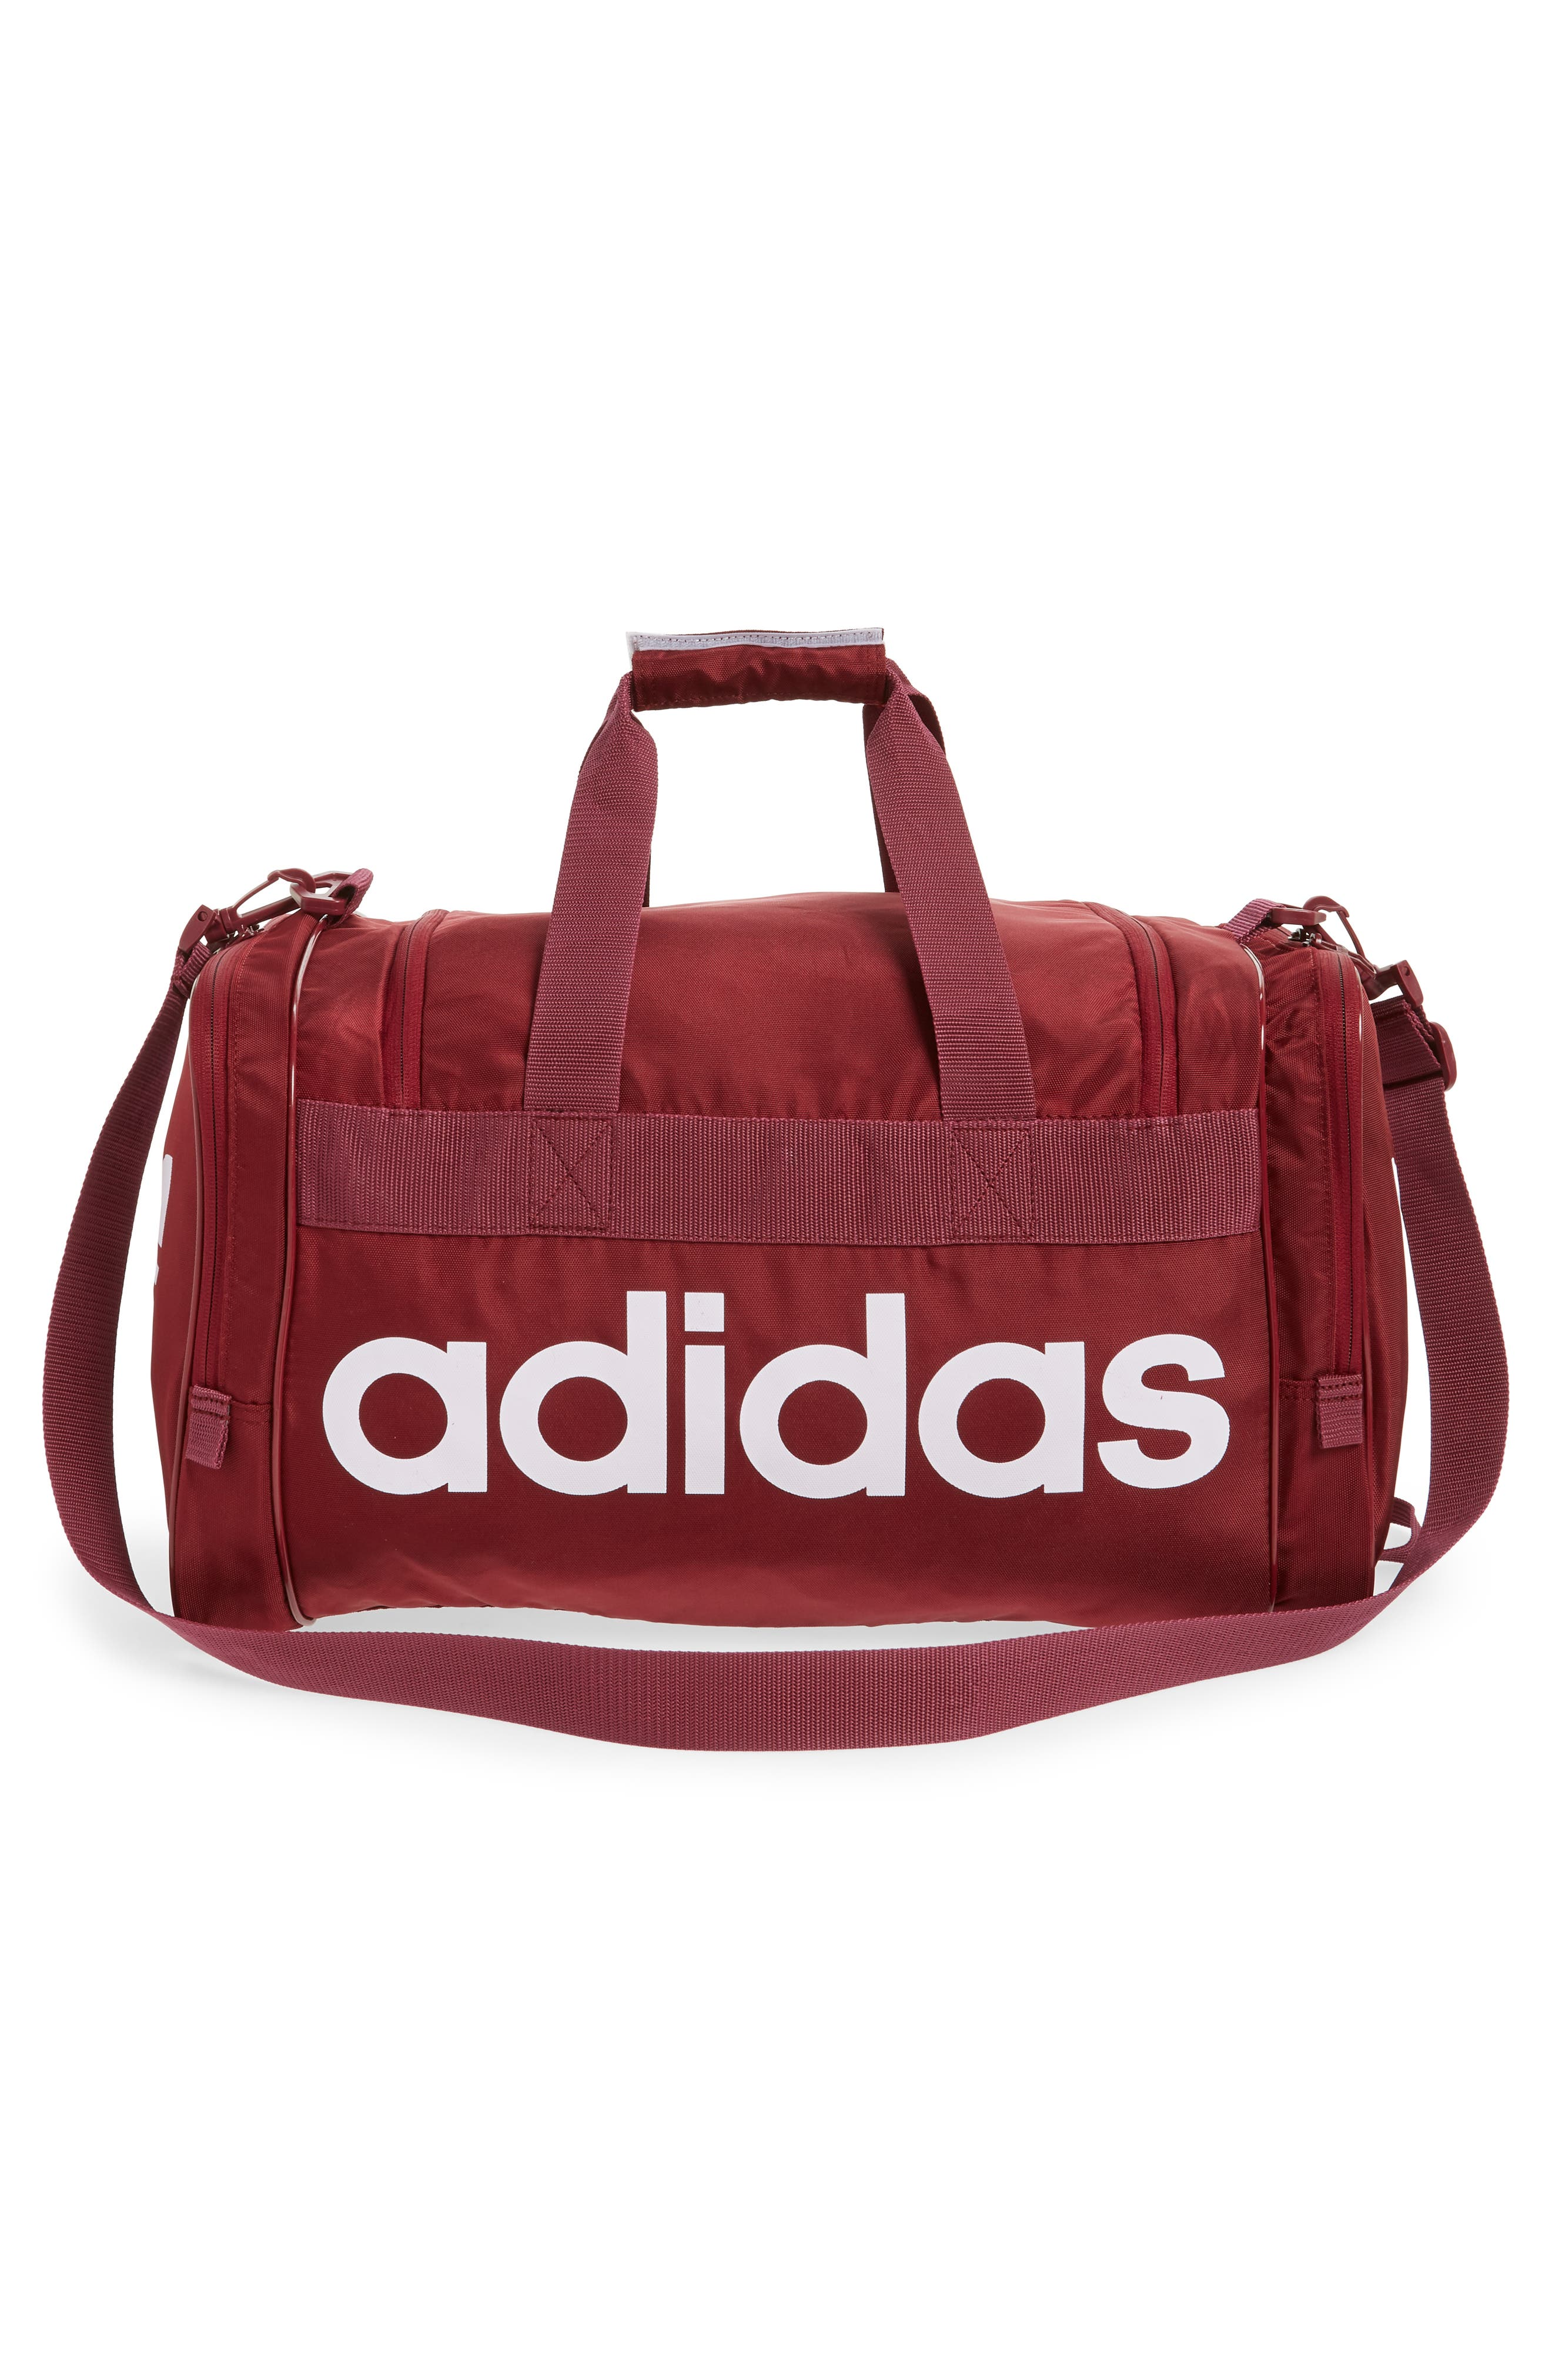 adidas Original Santiago Duffel Bag,                             Alternate thumbnail 3, color,                             COLLEGIATE BURGUNDY/ WHITE